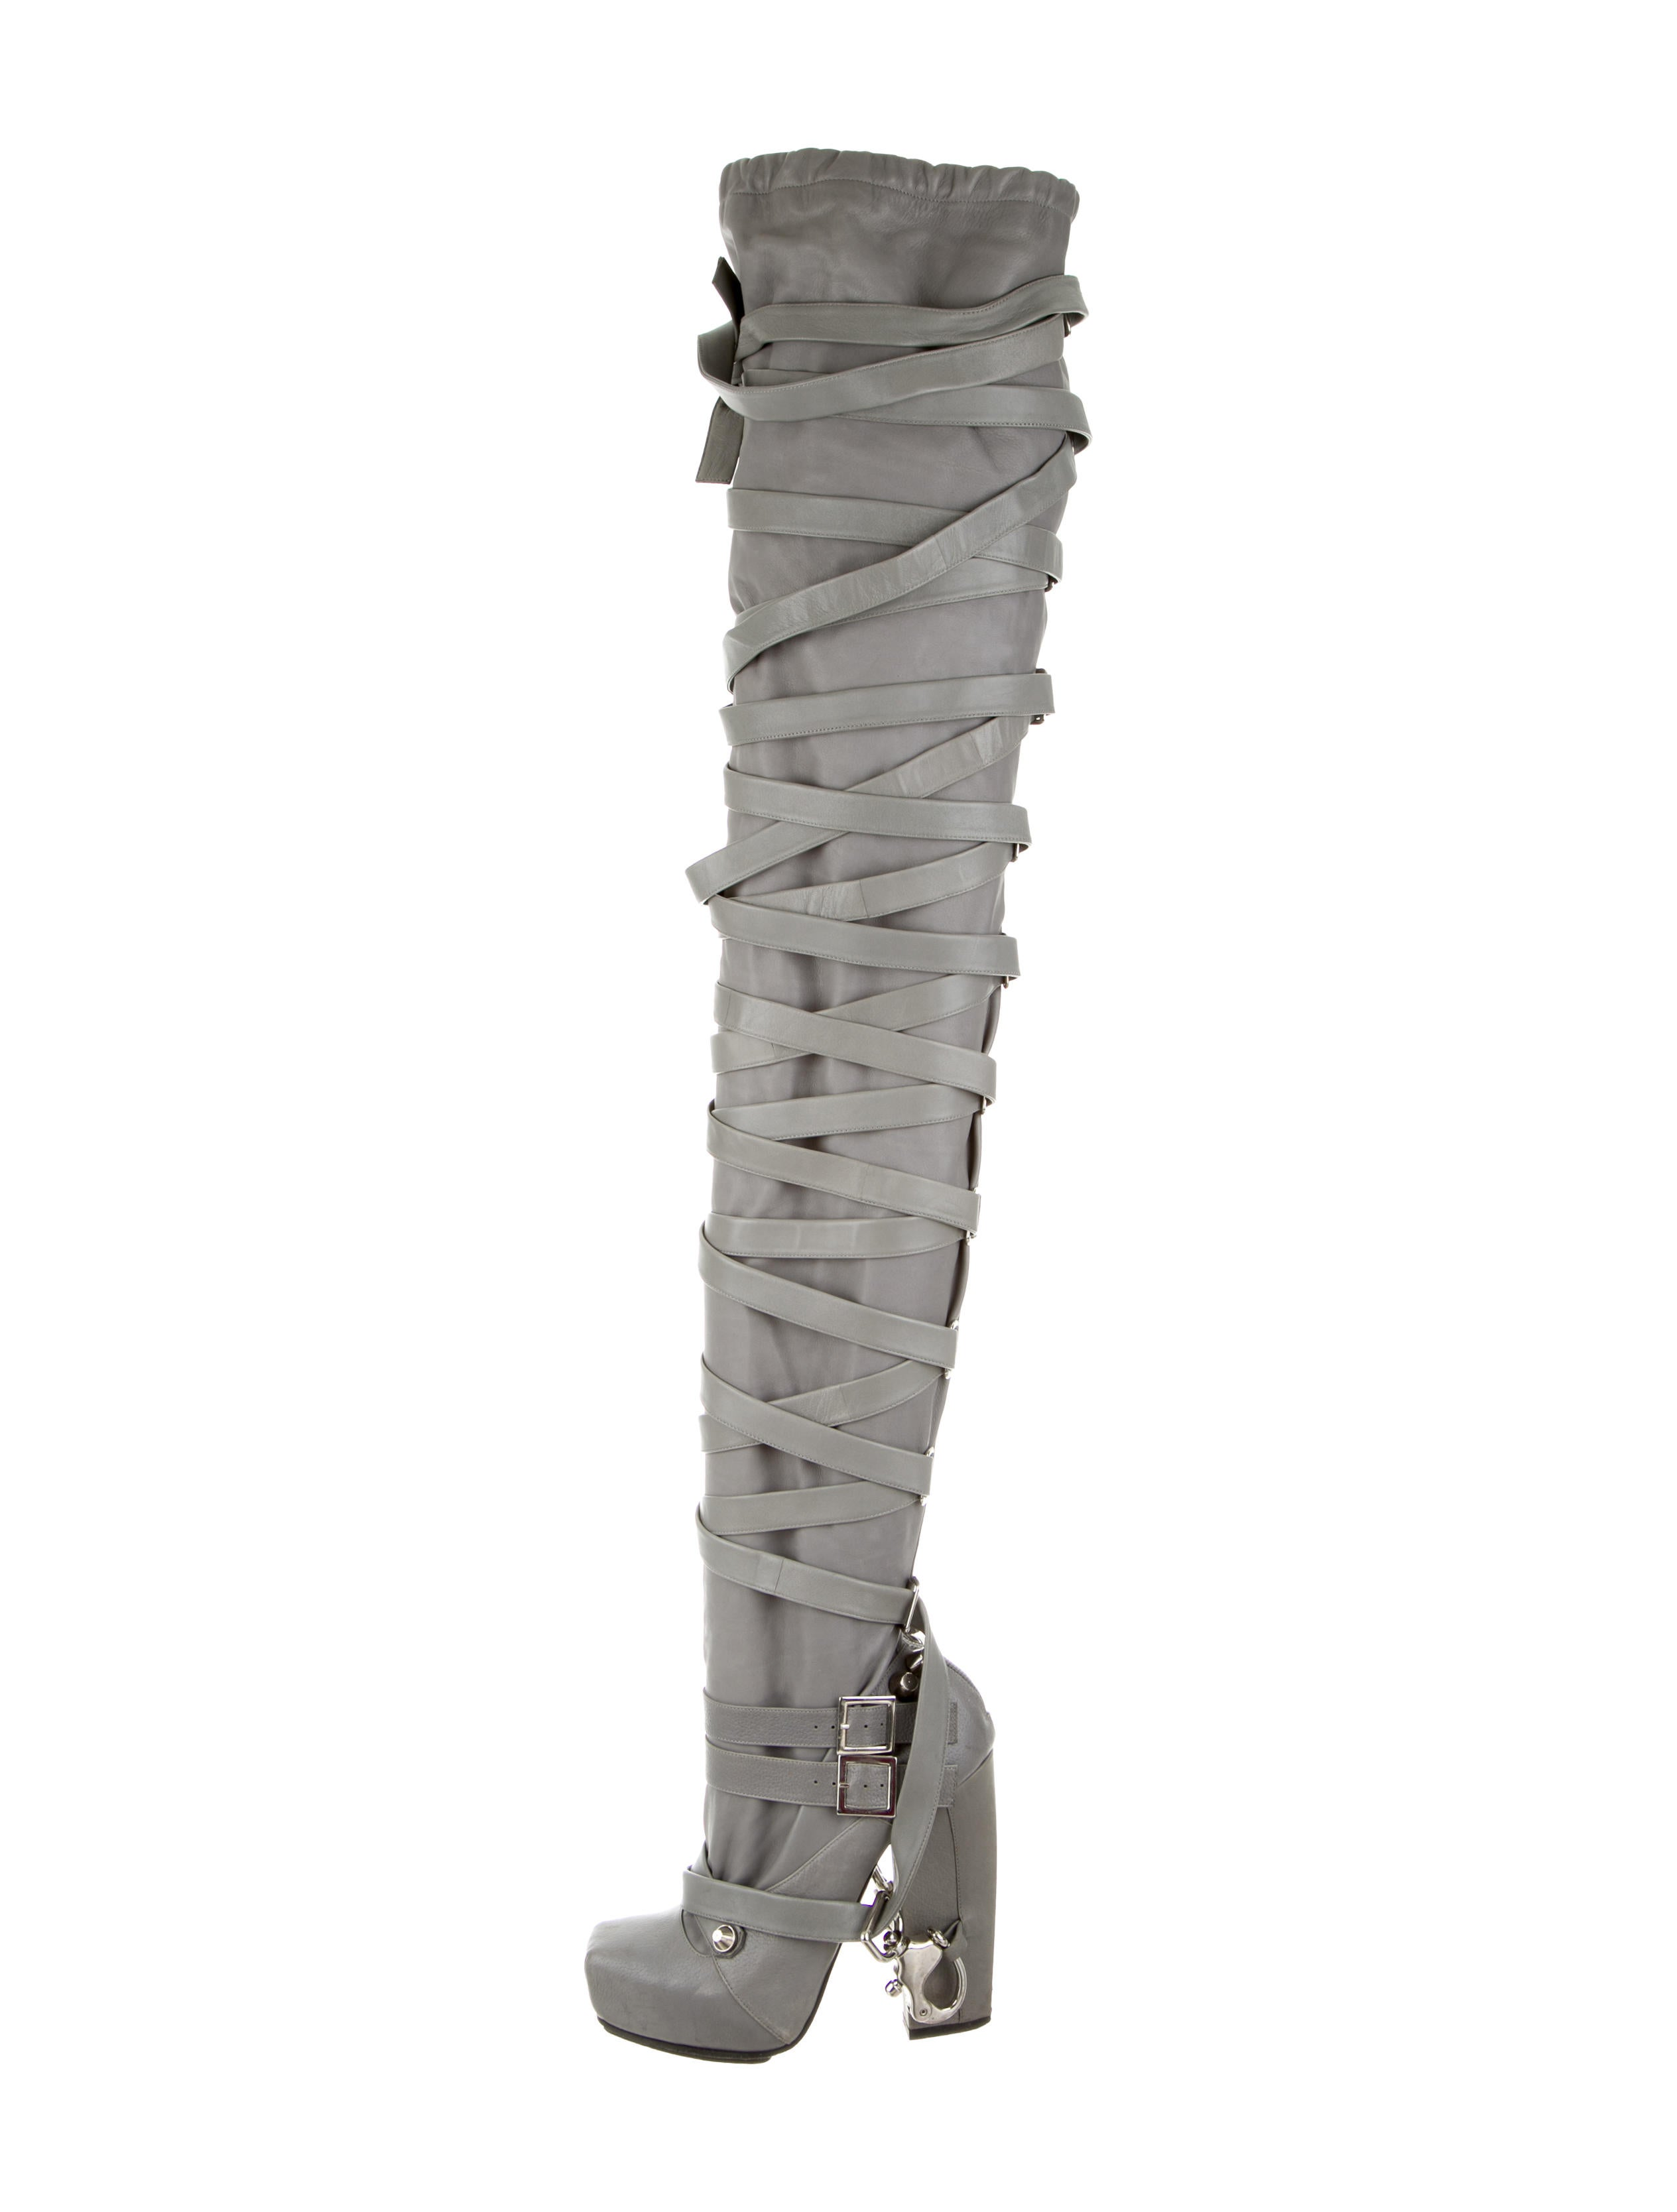 best wholesale cheap online clearance online official site Nicholas Kirkwood x Rodarte Bondage Thigh-High Boots free shipping 100% guaranteed L6tkkNJH